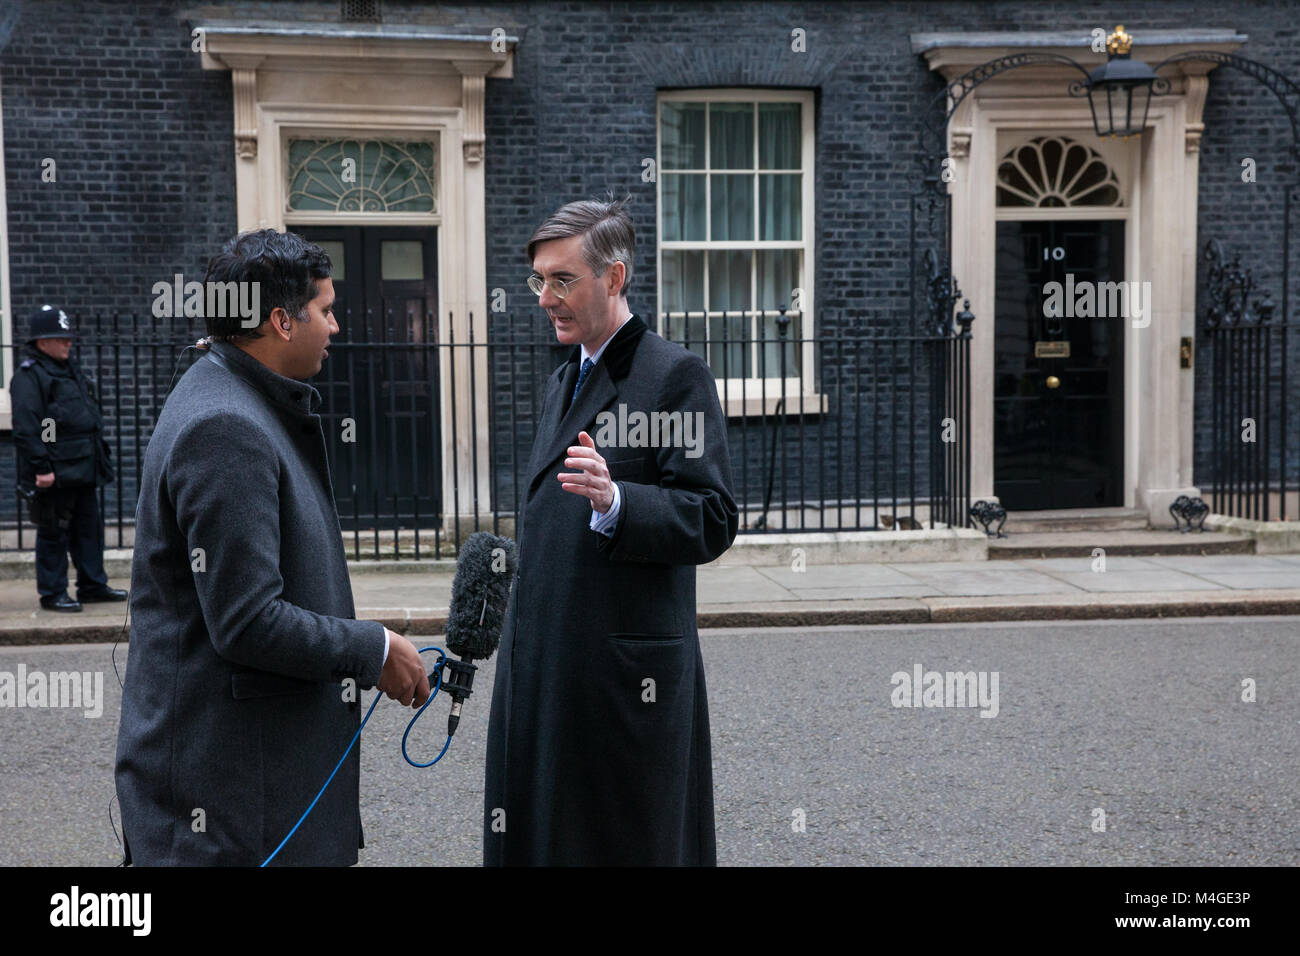 London, UK. 8th February, 2018. Jacob Rees-Mogg MP is interviewed by Sky News's Faisal Islam outside 10 Downing - Stock Image